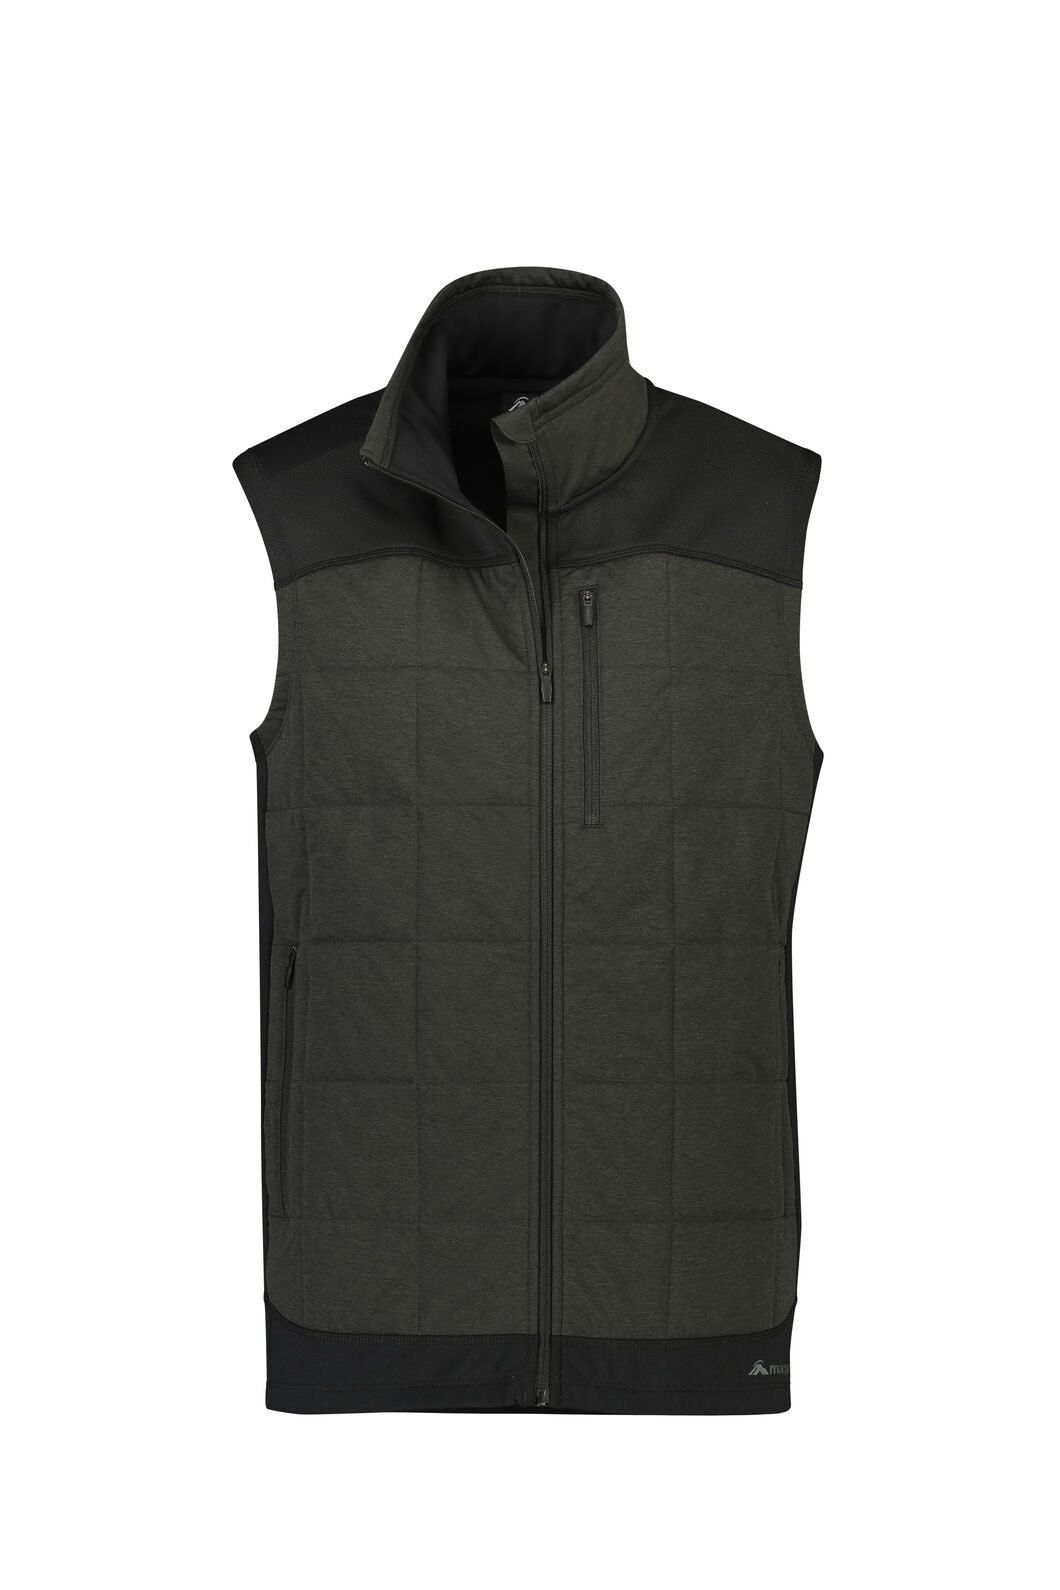 Macpac Accelerate PrimaLoft® Vest - Men's, Black, hi-res